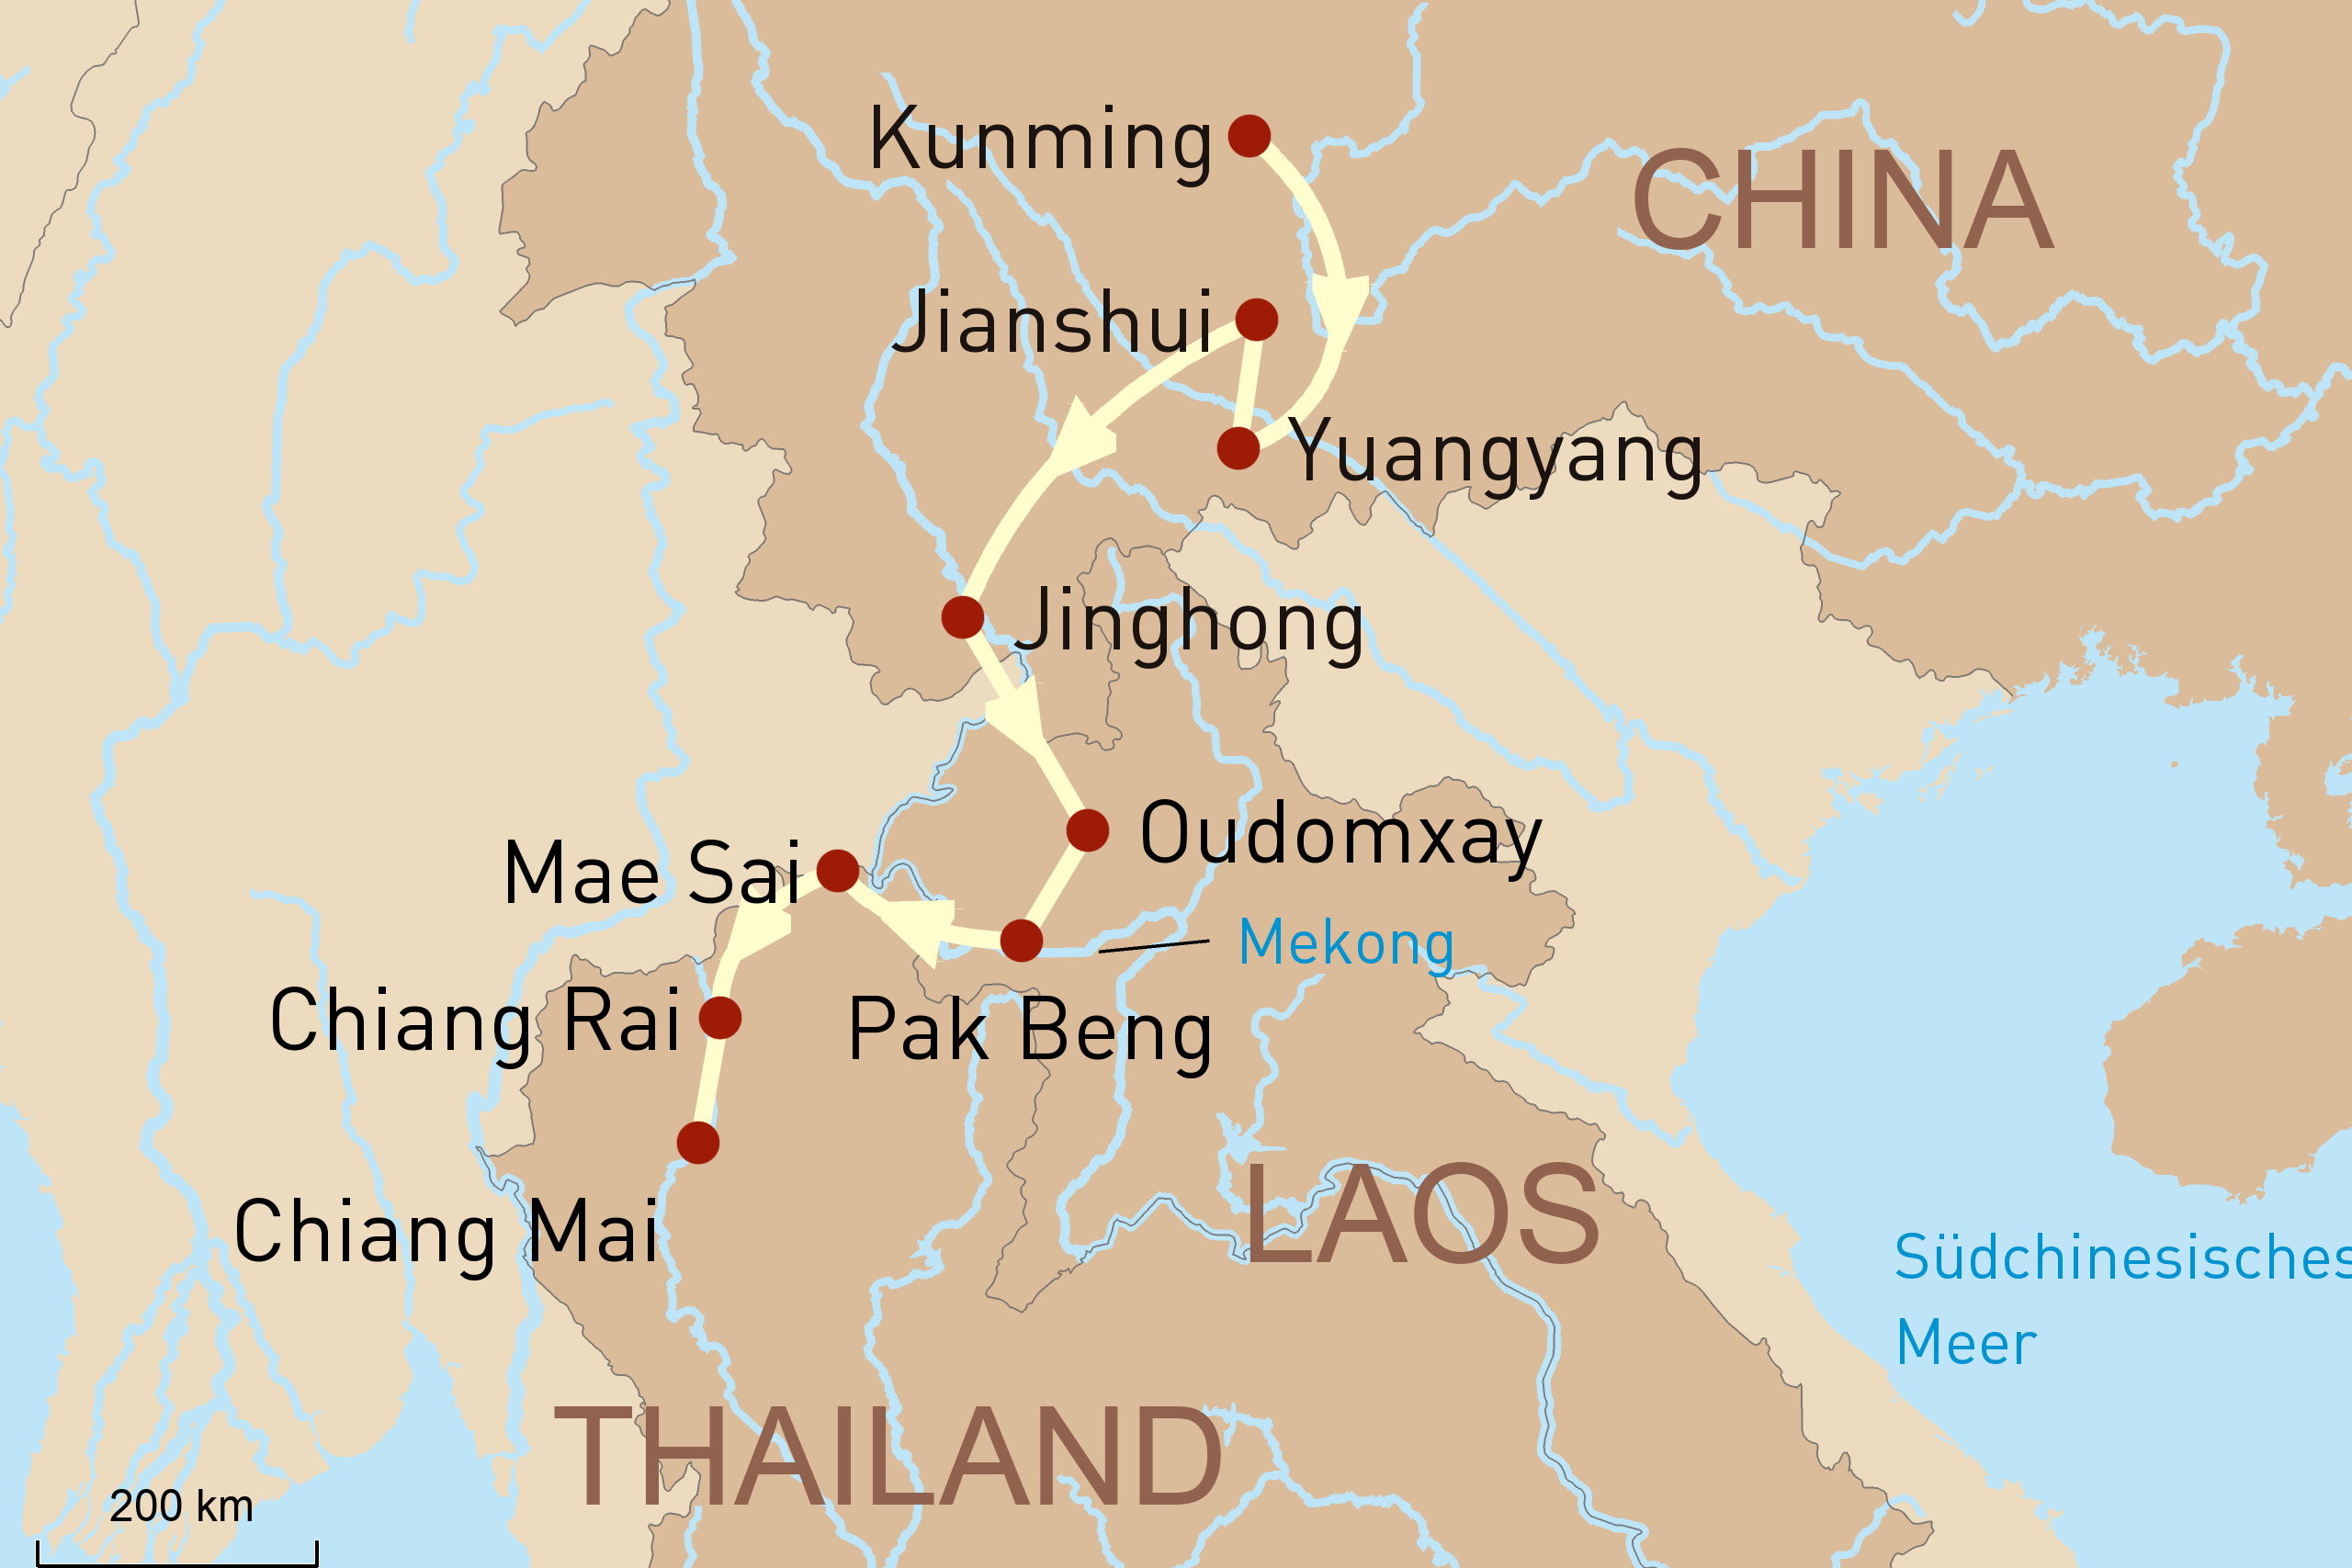 Reise durch China, Laos & Thailand